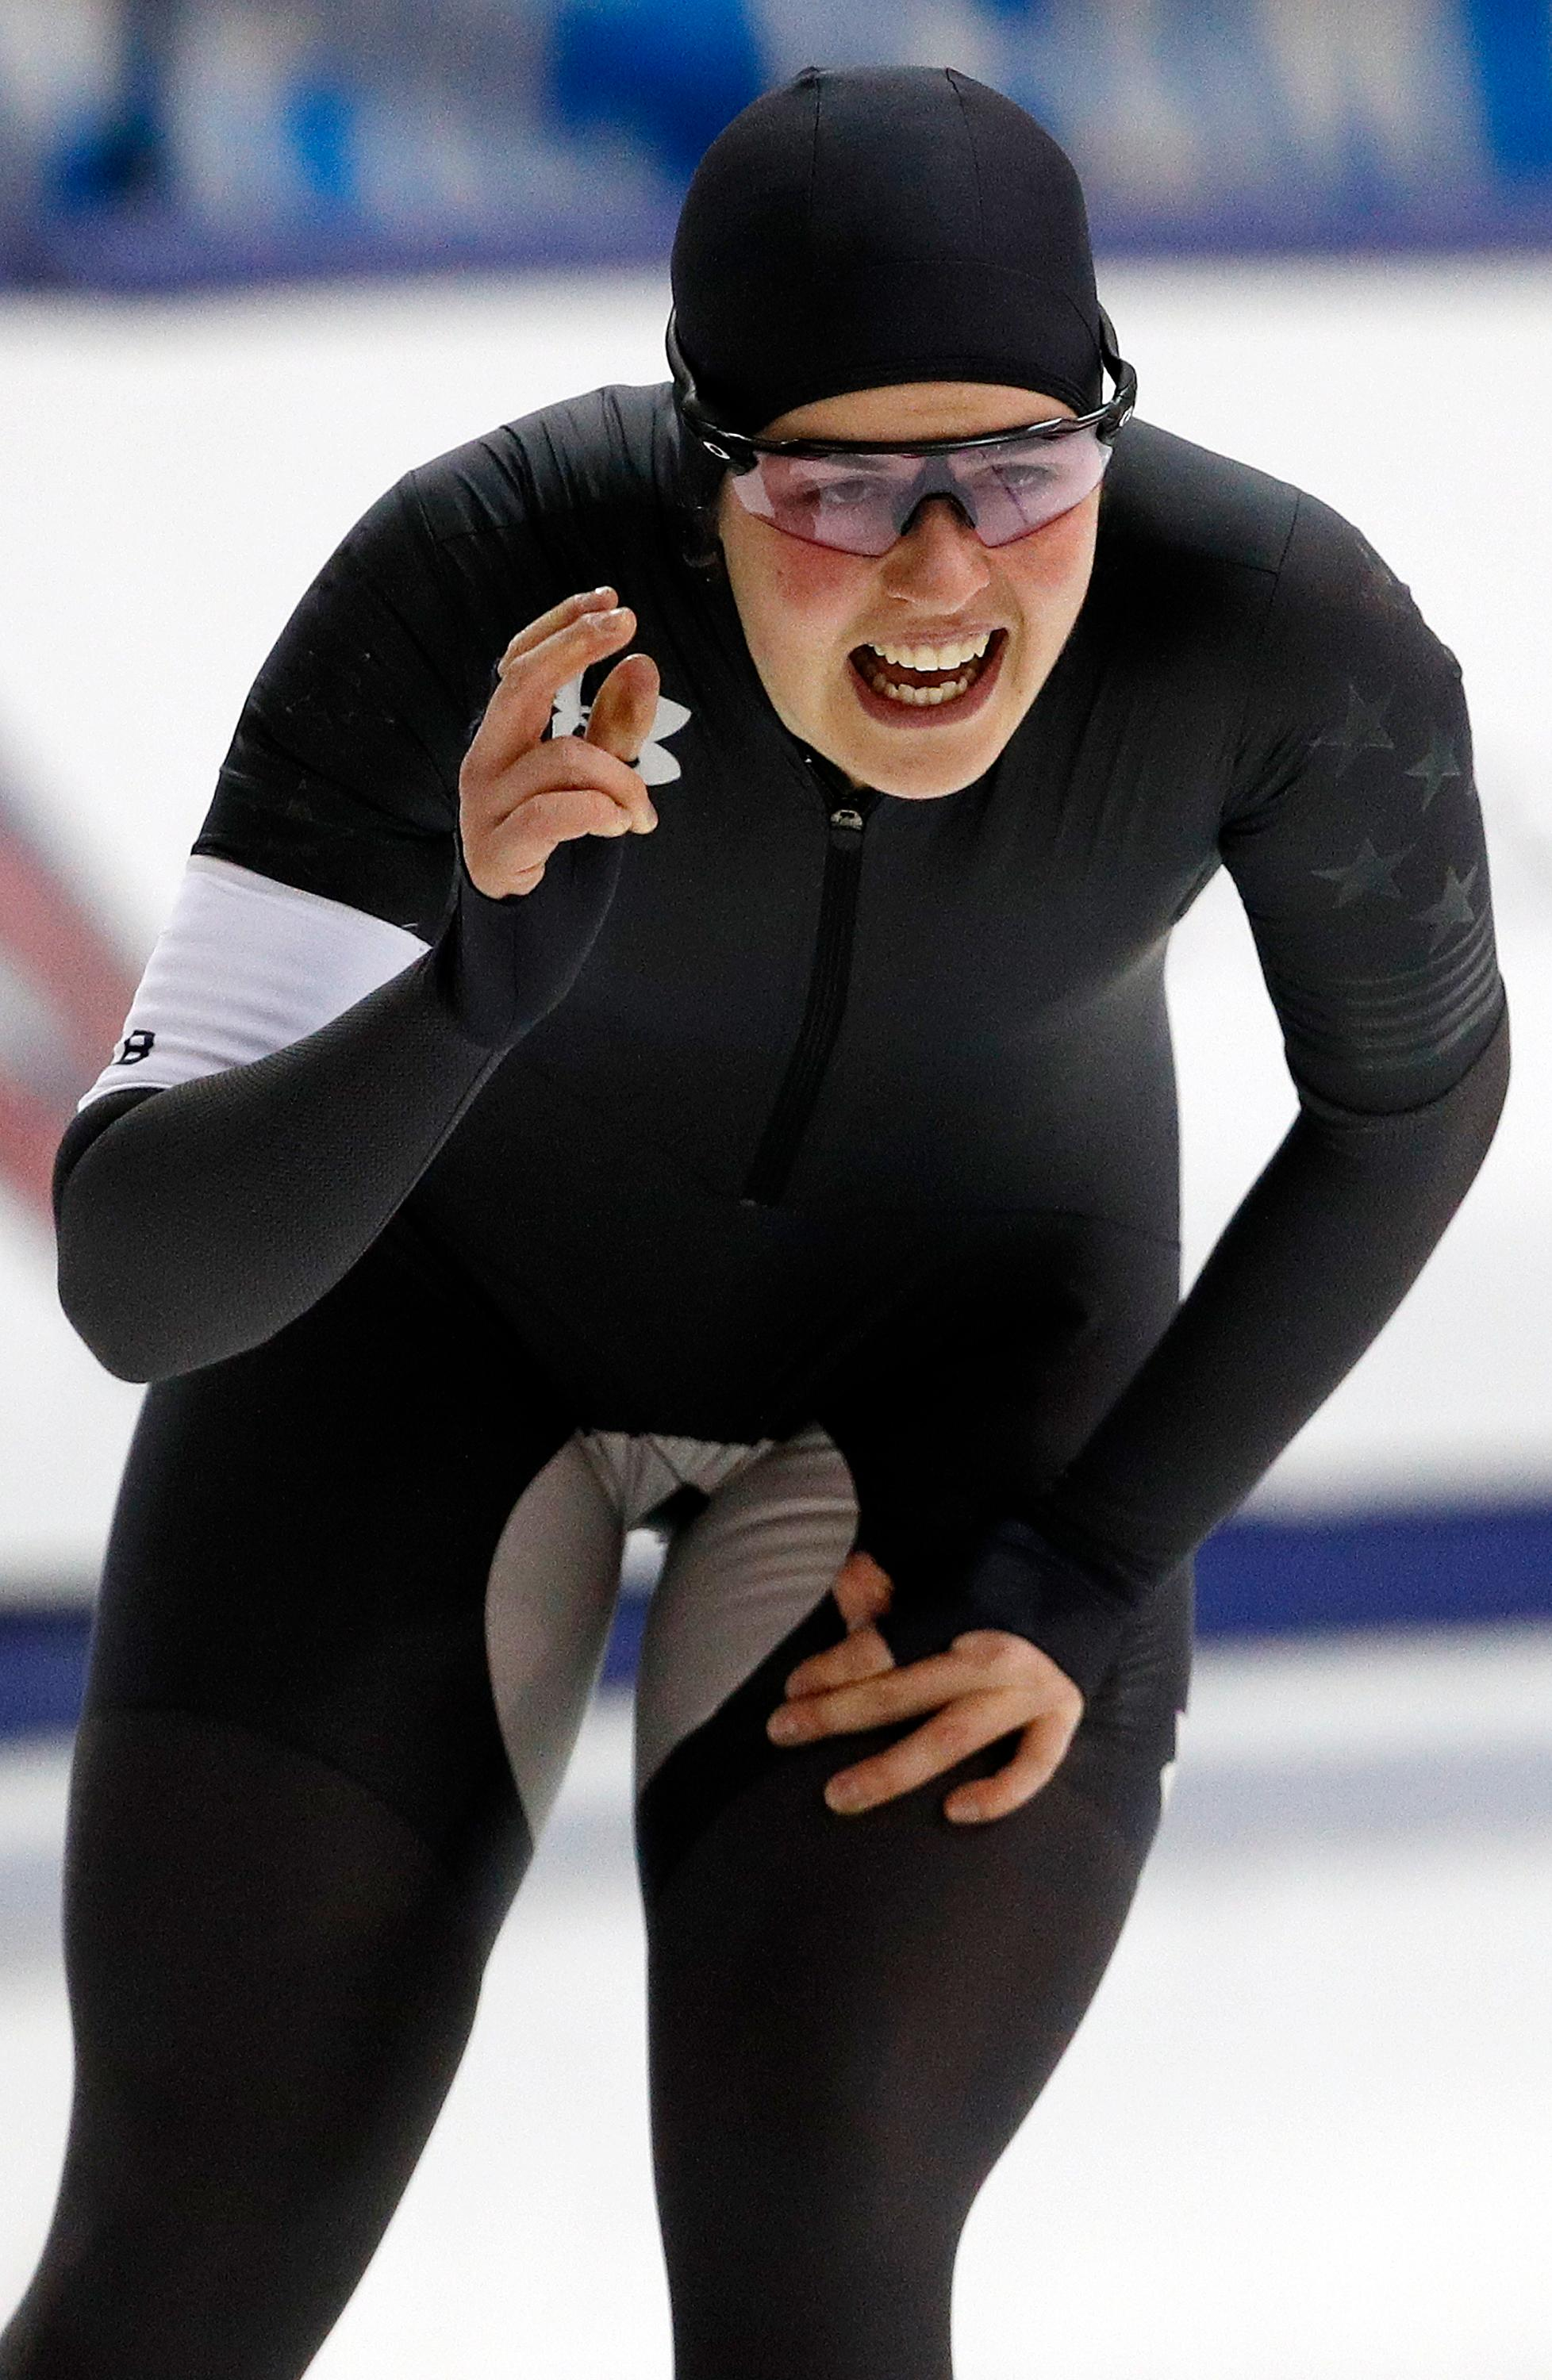 Schoutens Wins 3 000 To Earn Us Olympic Speedskating Berth